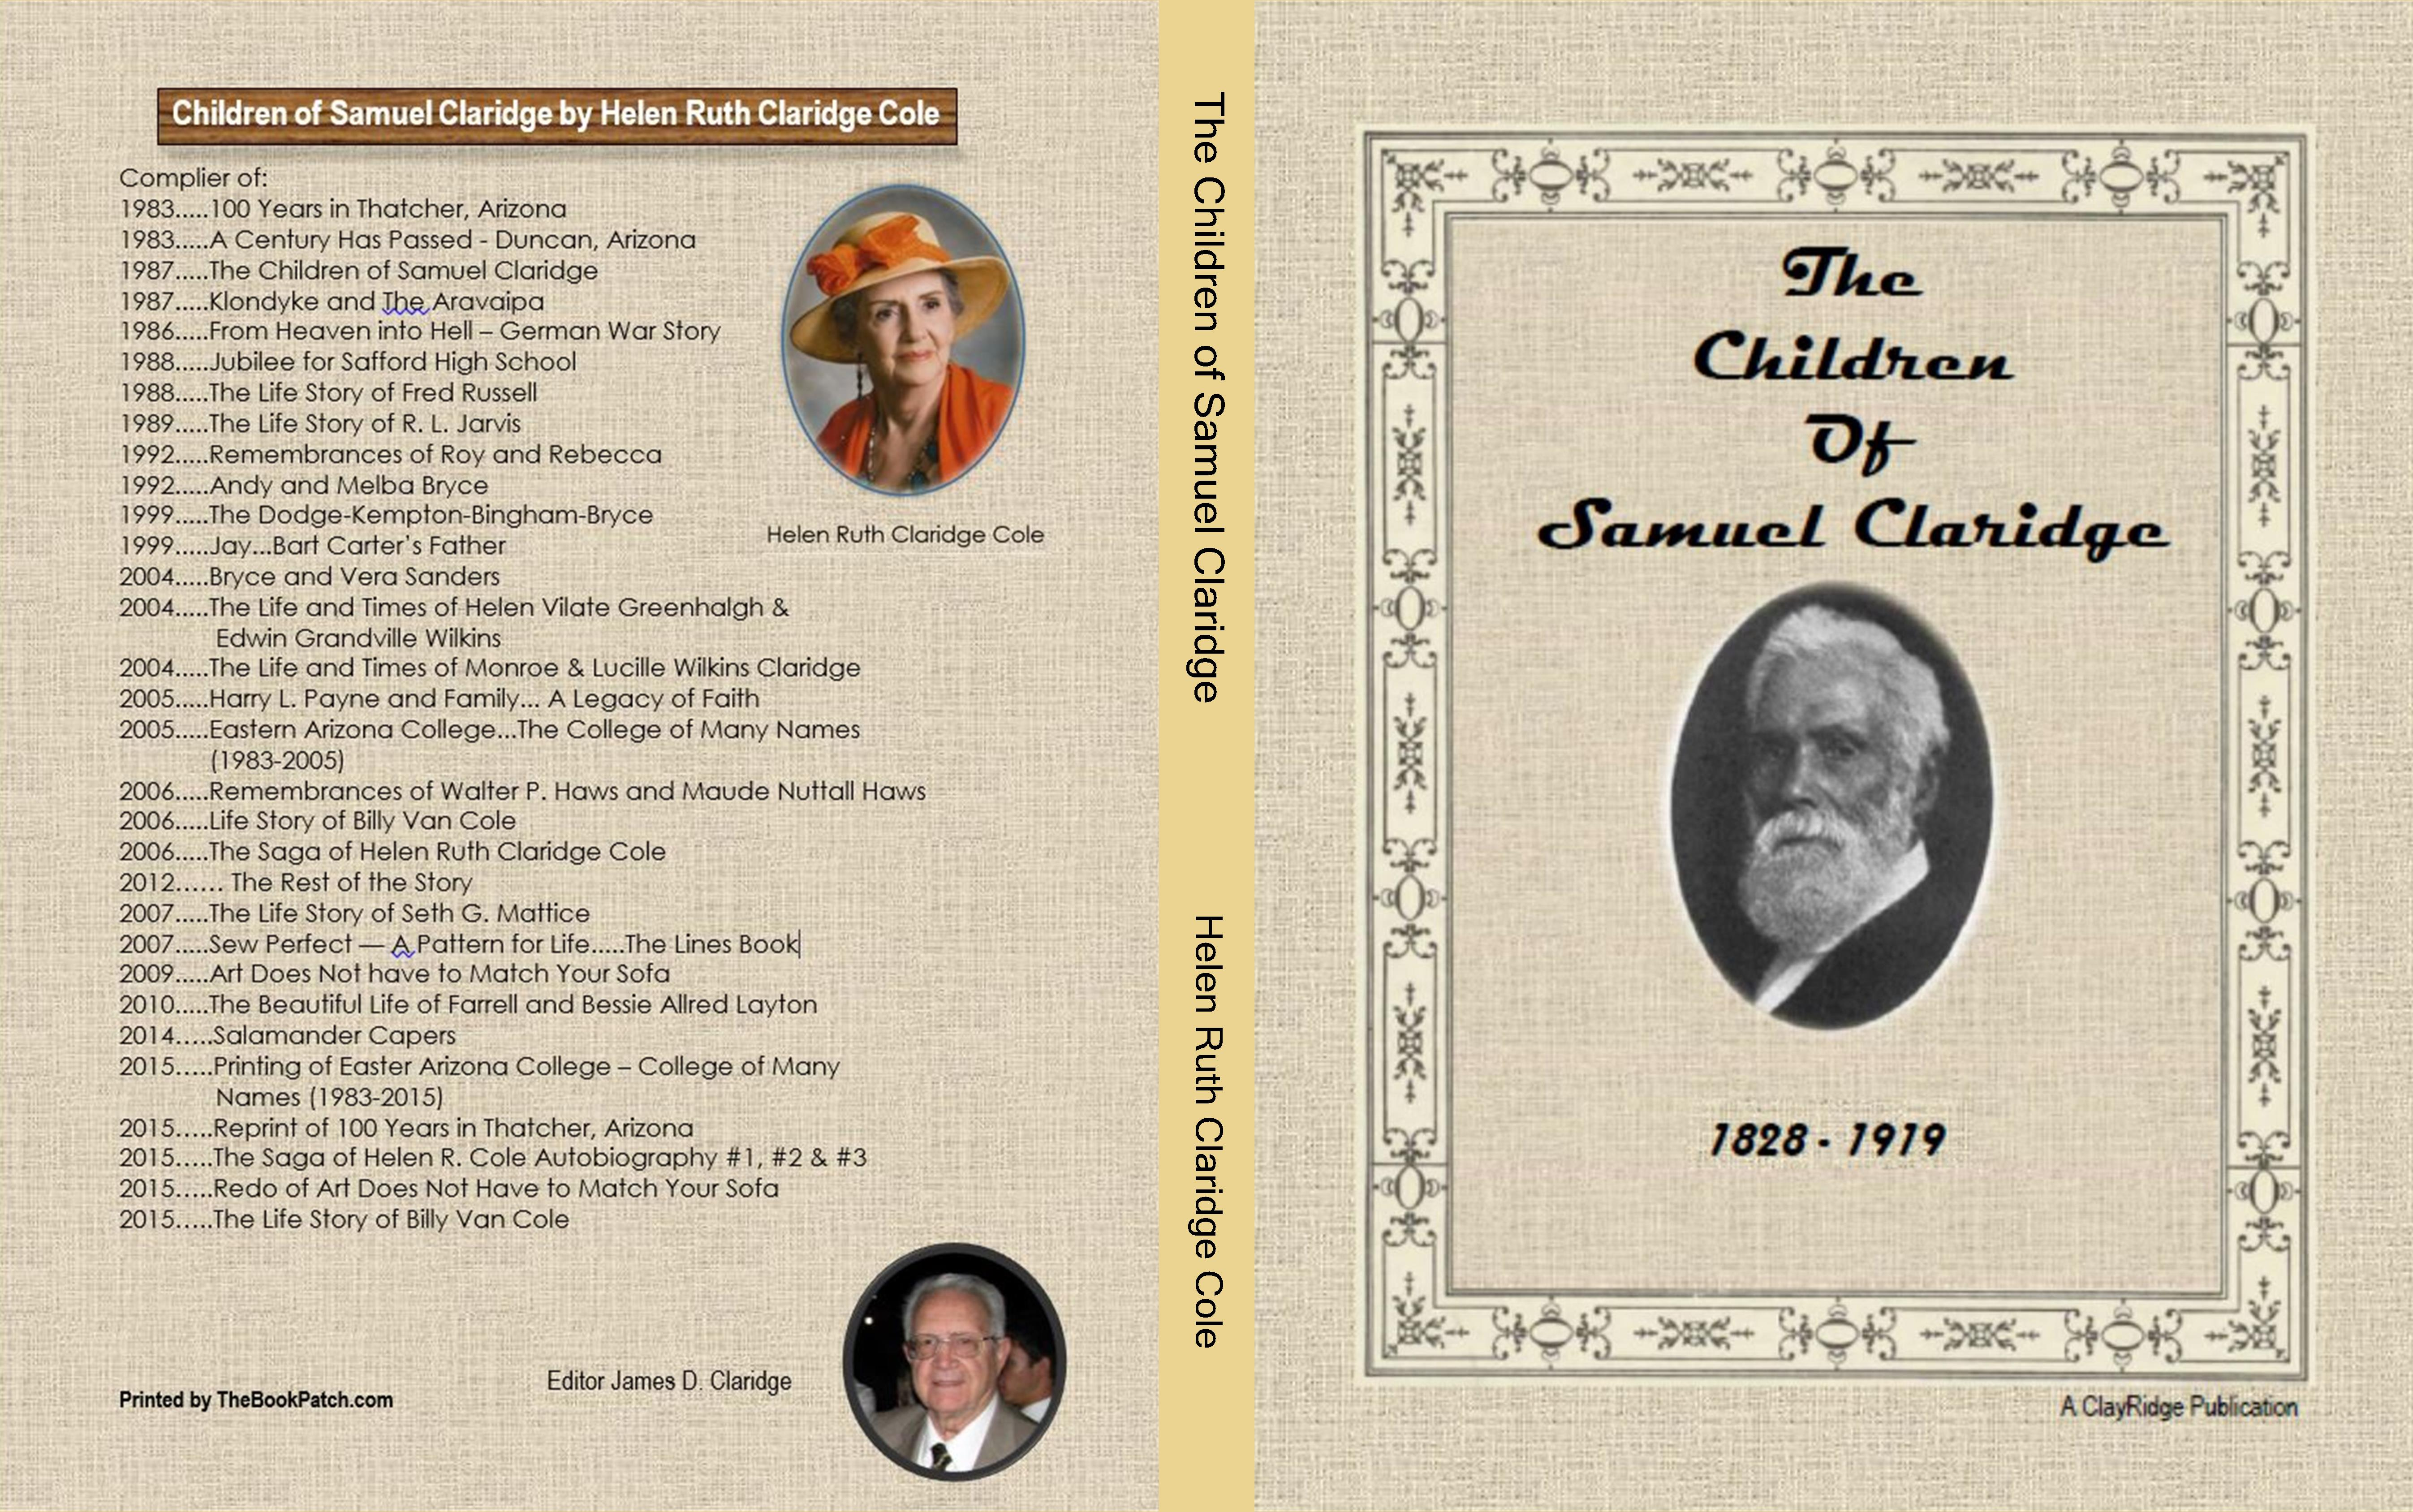 The Children of Samuel Claridge cover image